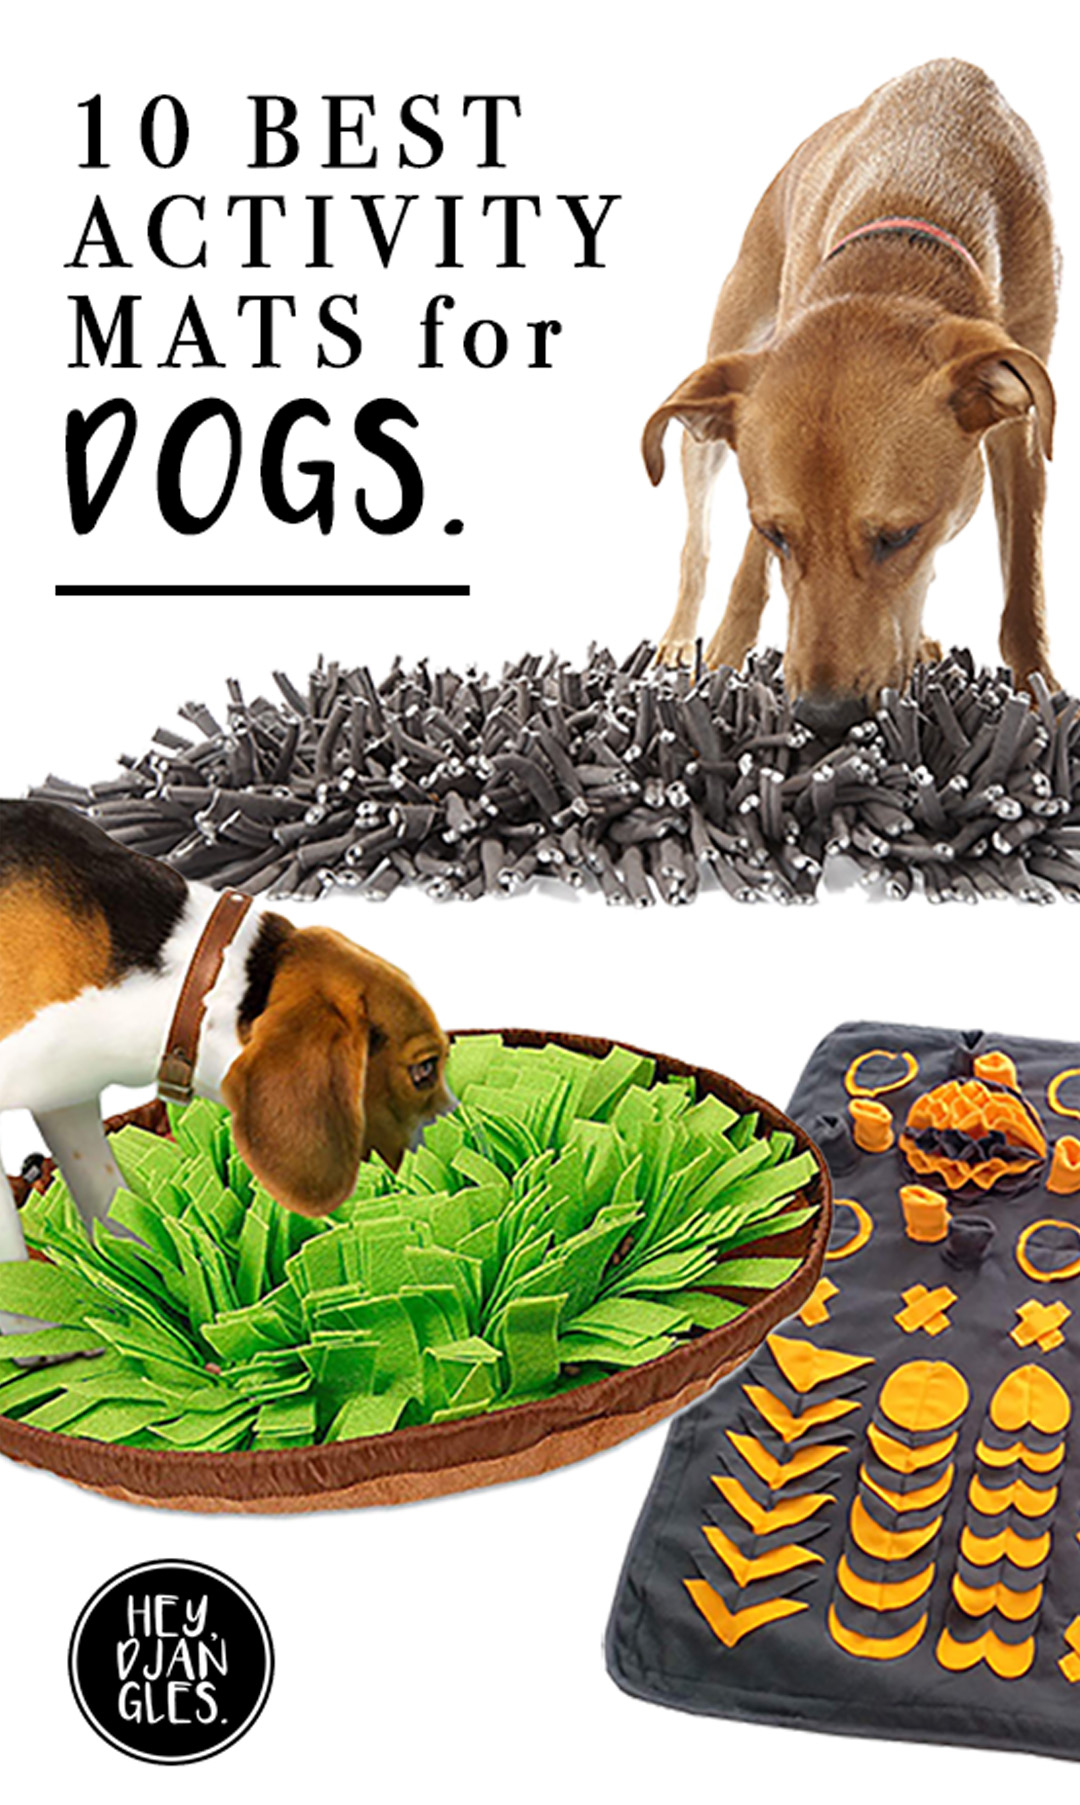 10 Best Boredom Busting Activity Mats for Dogs - heydjangles.com - dog boredom busters, snuffle mats, canine enrichment toys #doglover #dogtoys